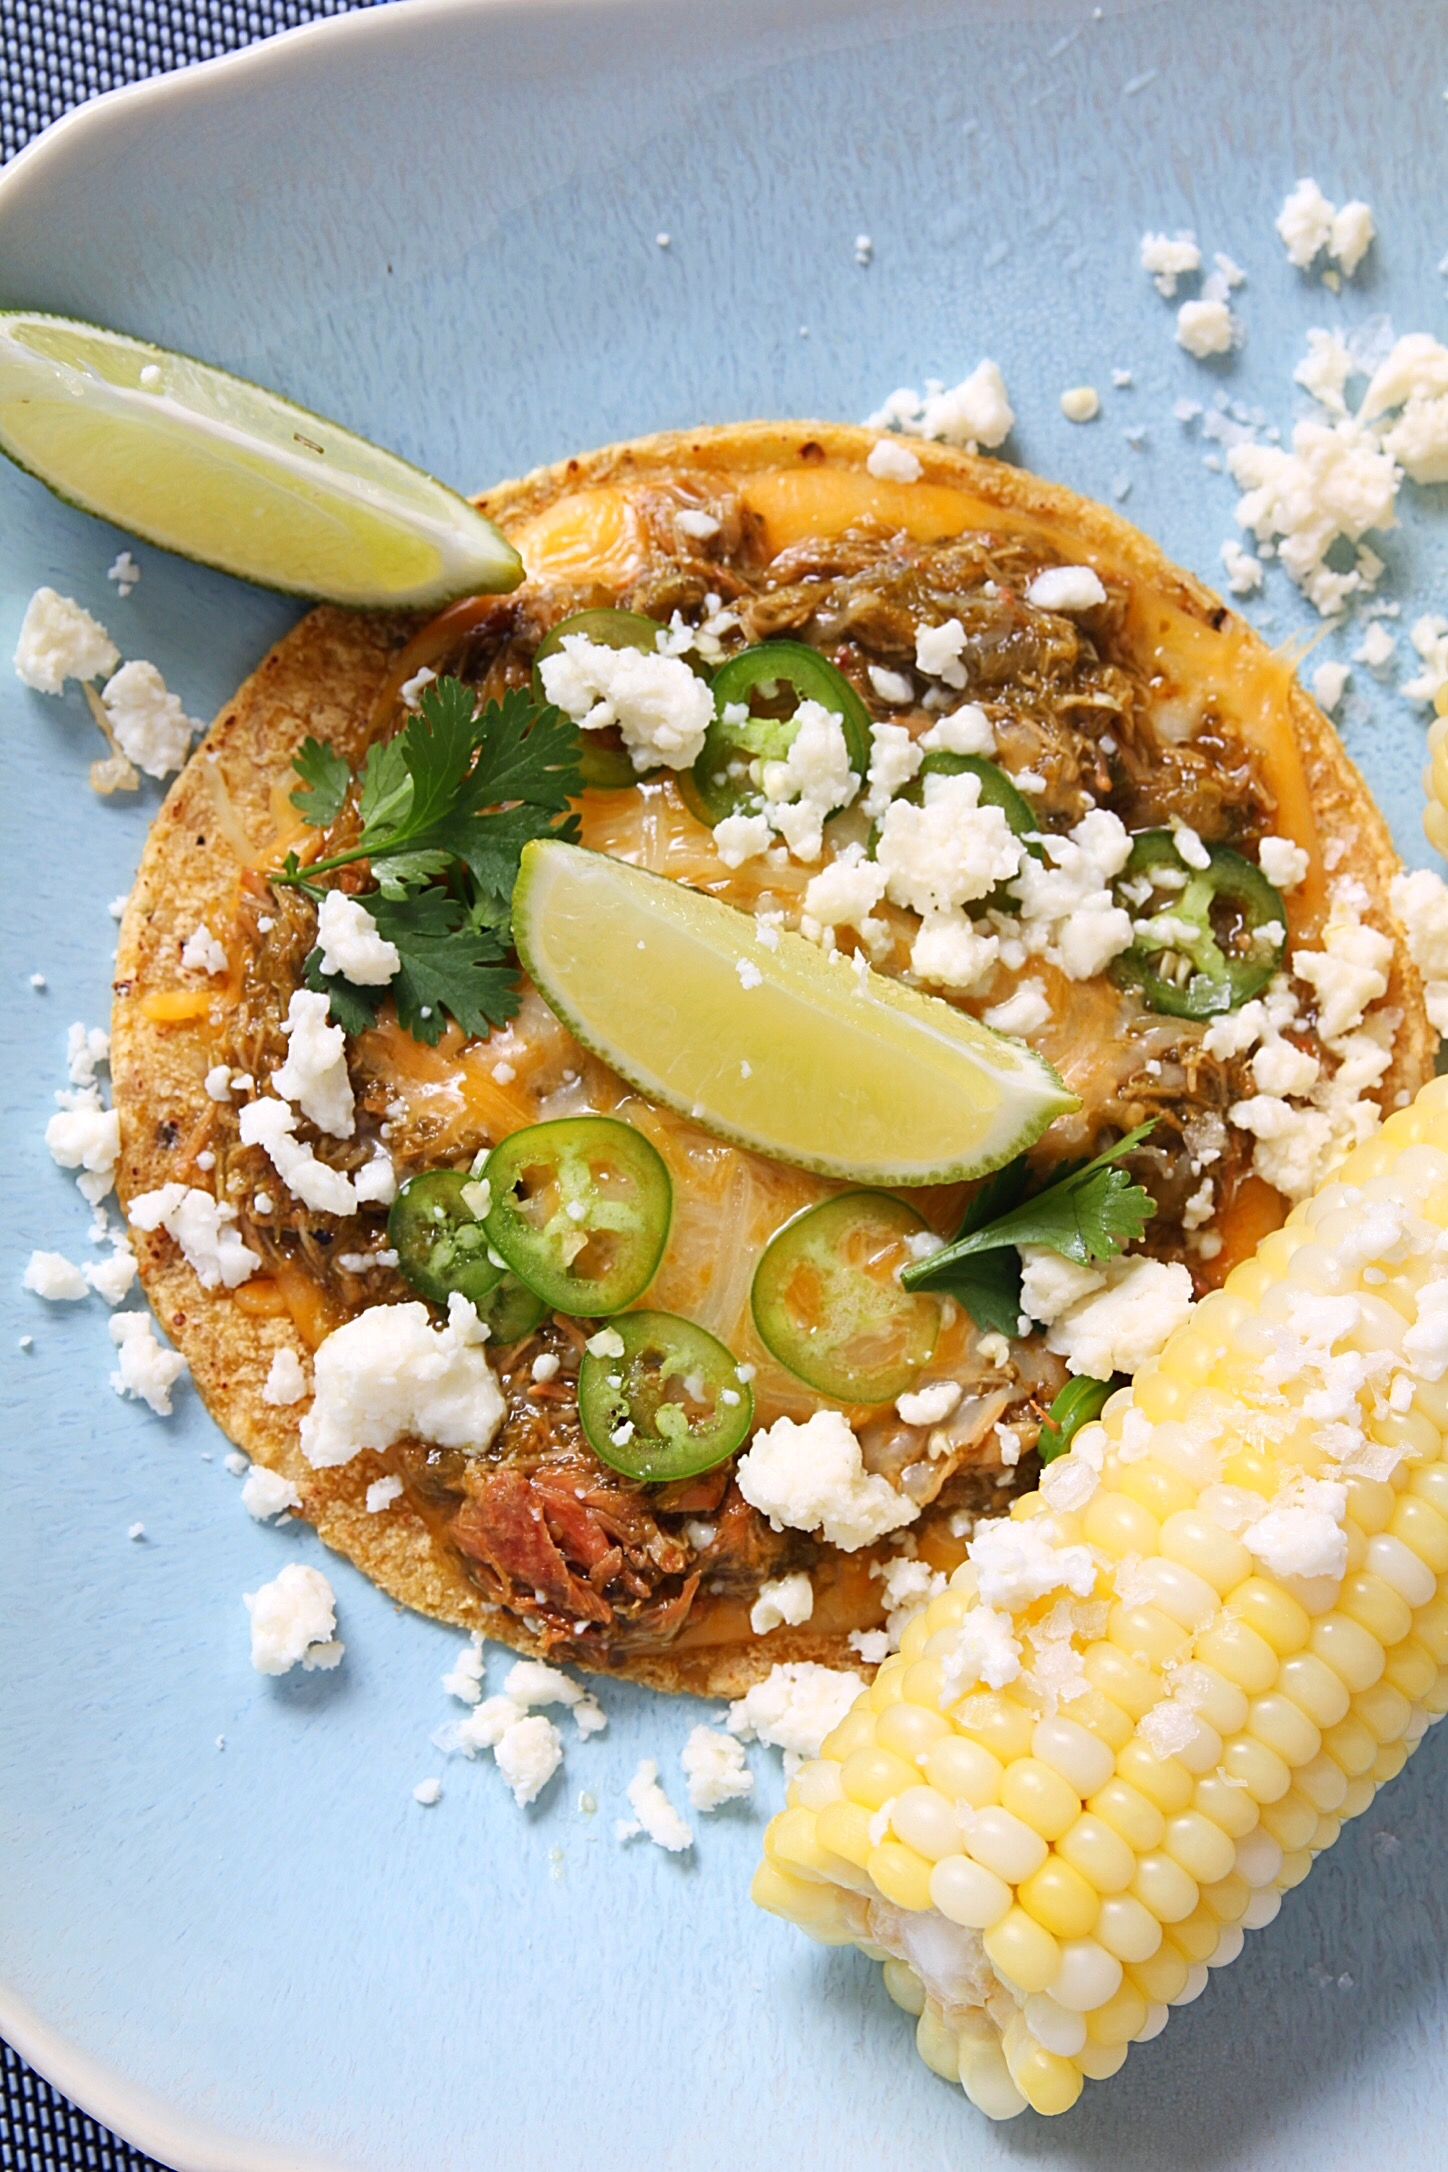 Chicken chili verde taco with Serrano peppers, extra cheese, and corn on the cob